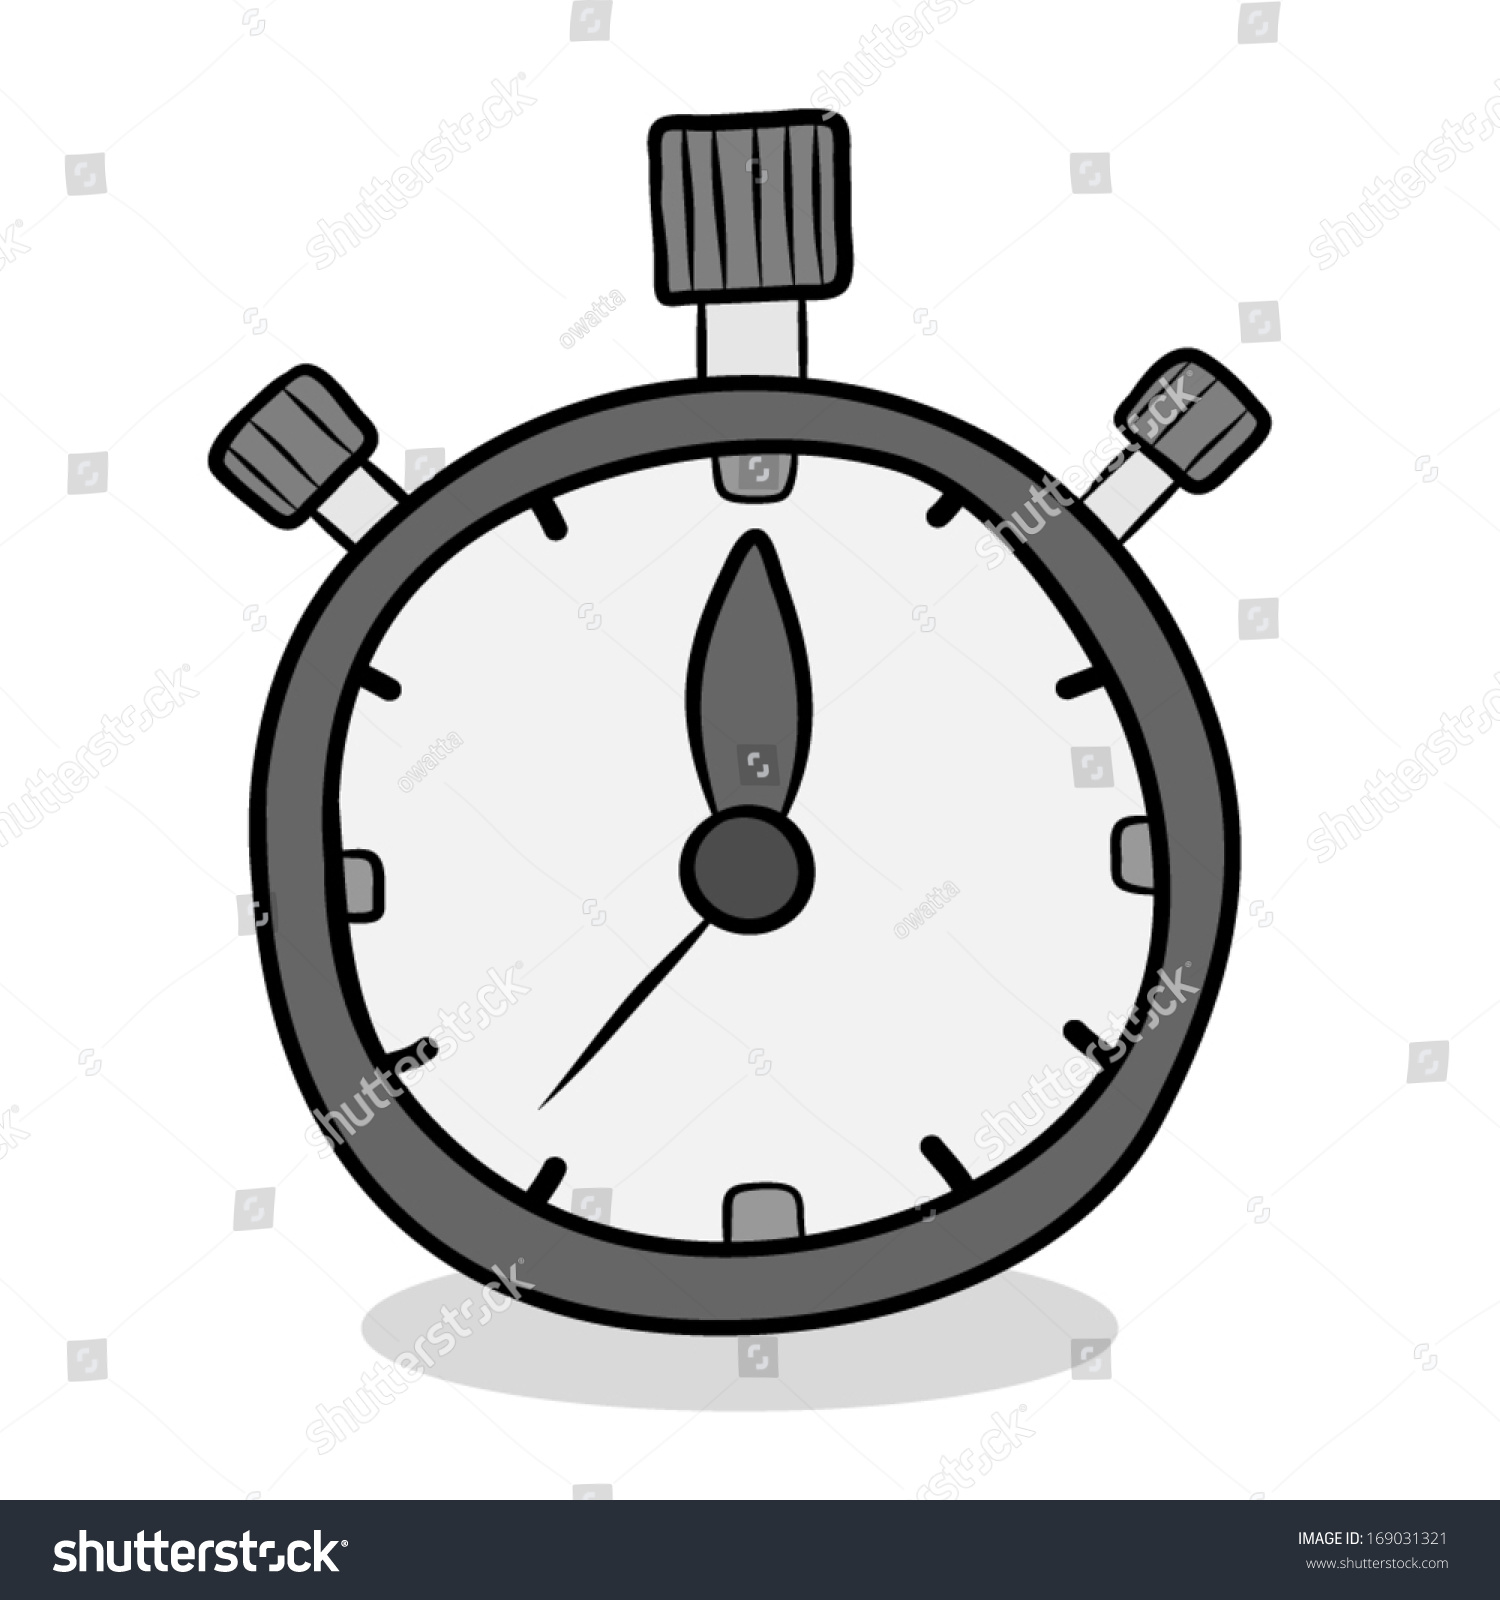 Stop watch cartoon vector illustration isolated stock vector 169031321 shutterstock for Cartoon watches